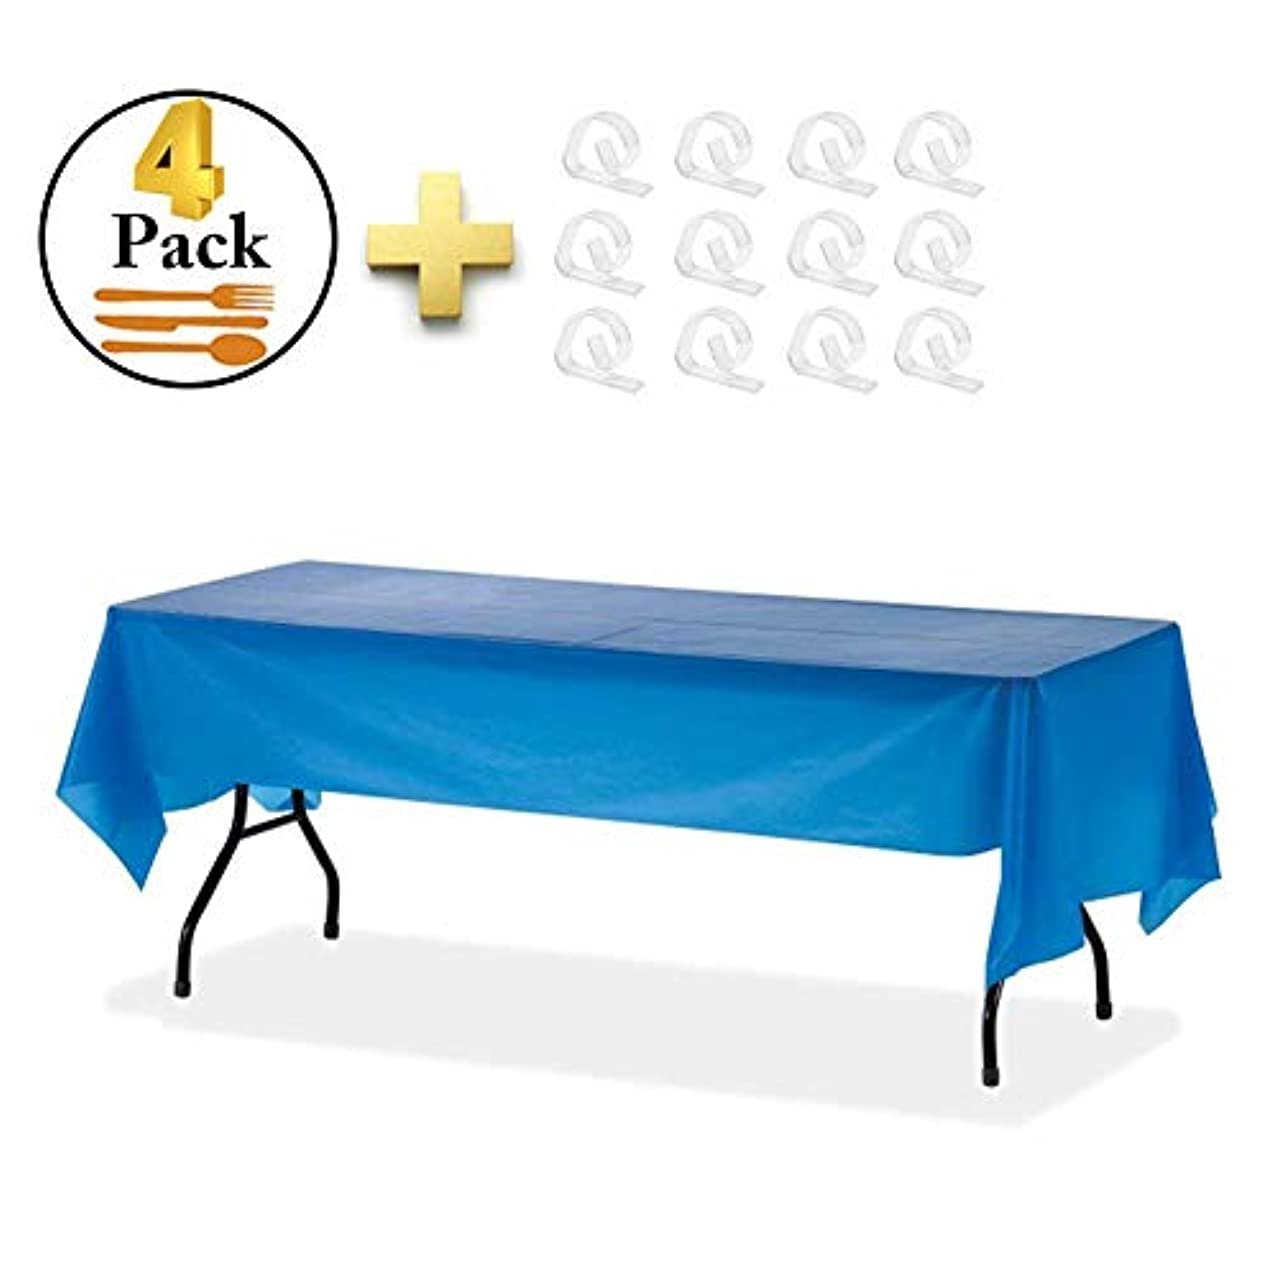 """ZSIIBO 4 Pack Disposable Tablecloth Party Plastic Tablecloth Waterproof Table Cover with Clips for Indoor or Outdoor Parties, Picnics (54 x 108"""",Dark Blue)"""